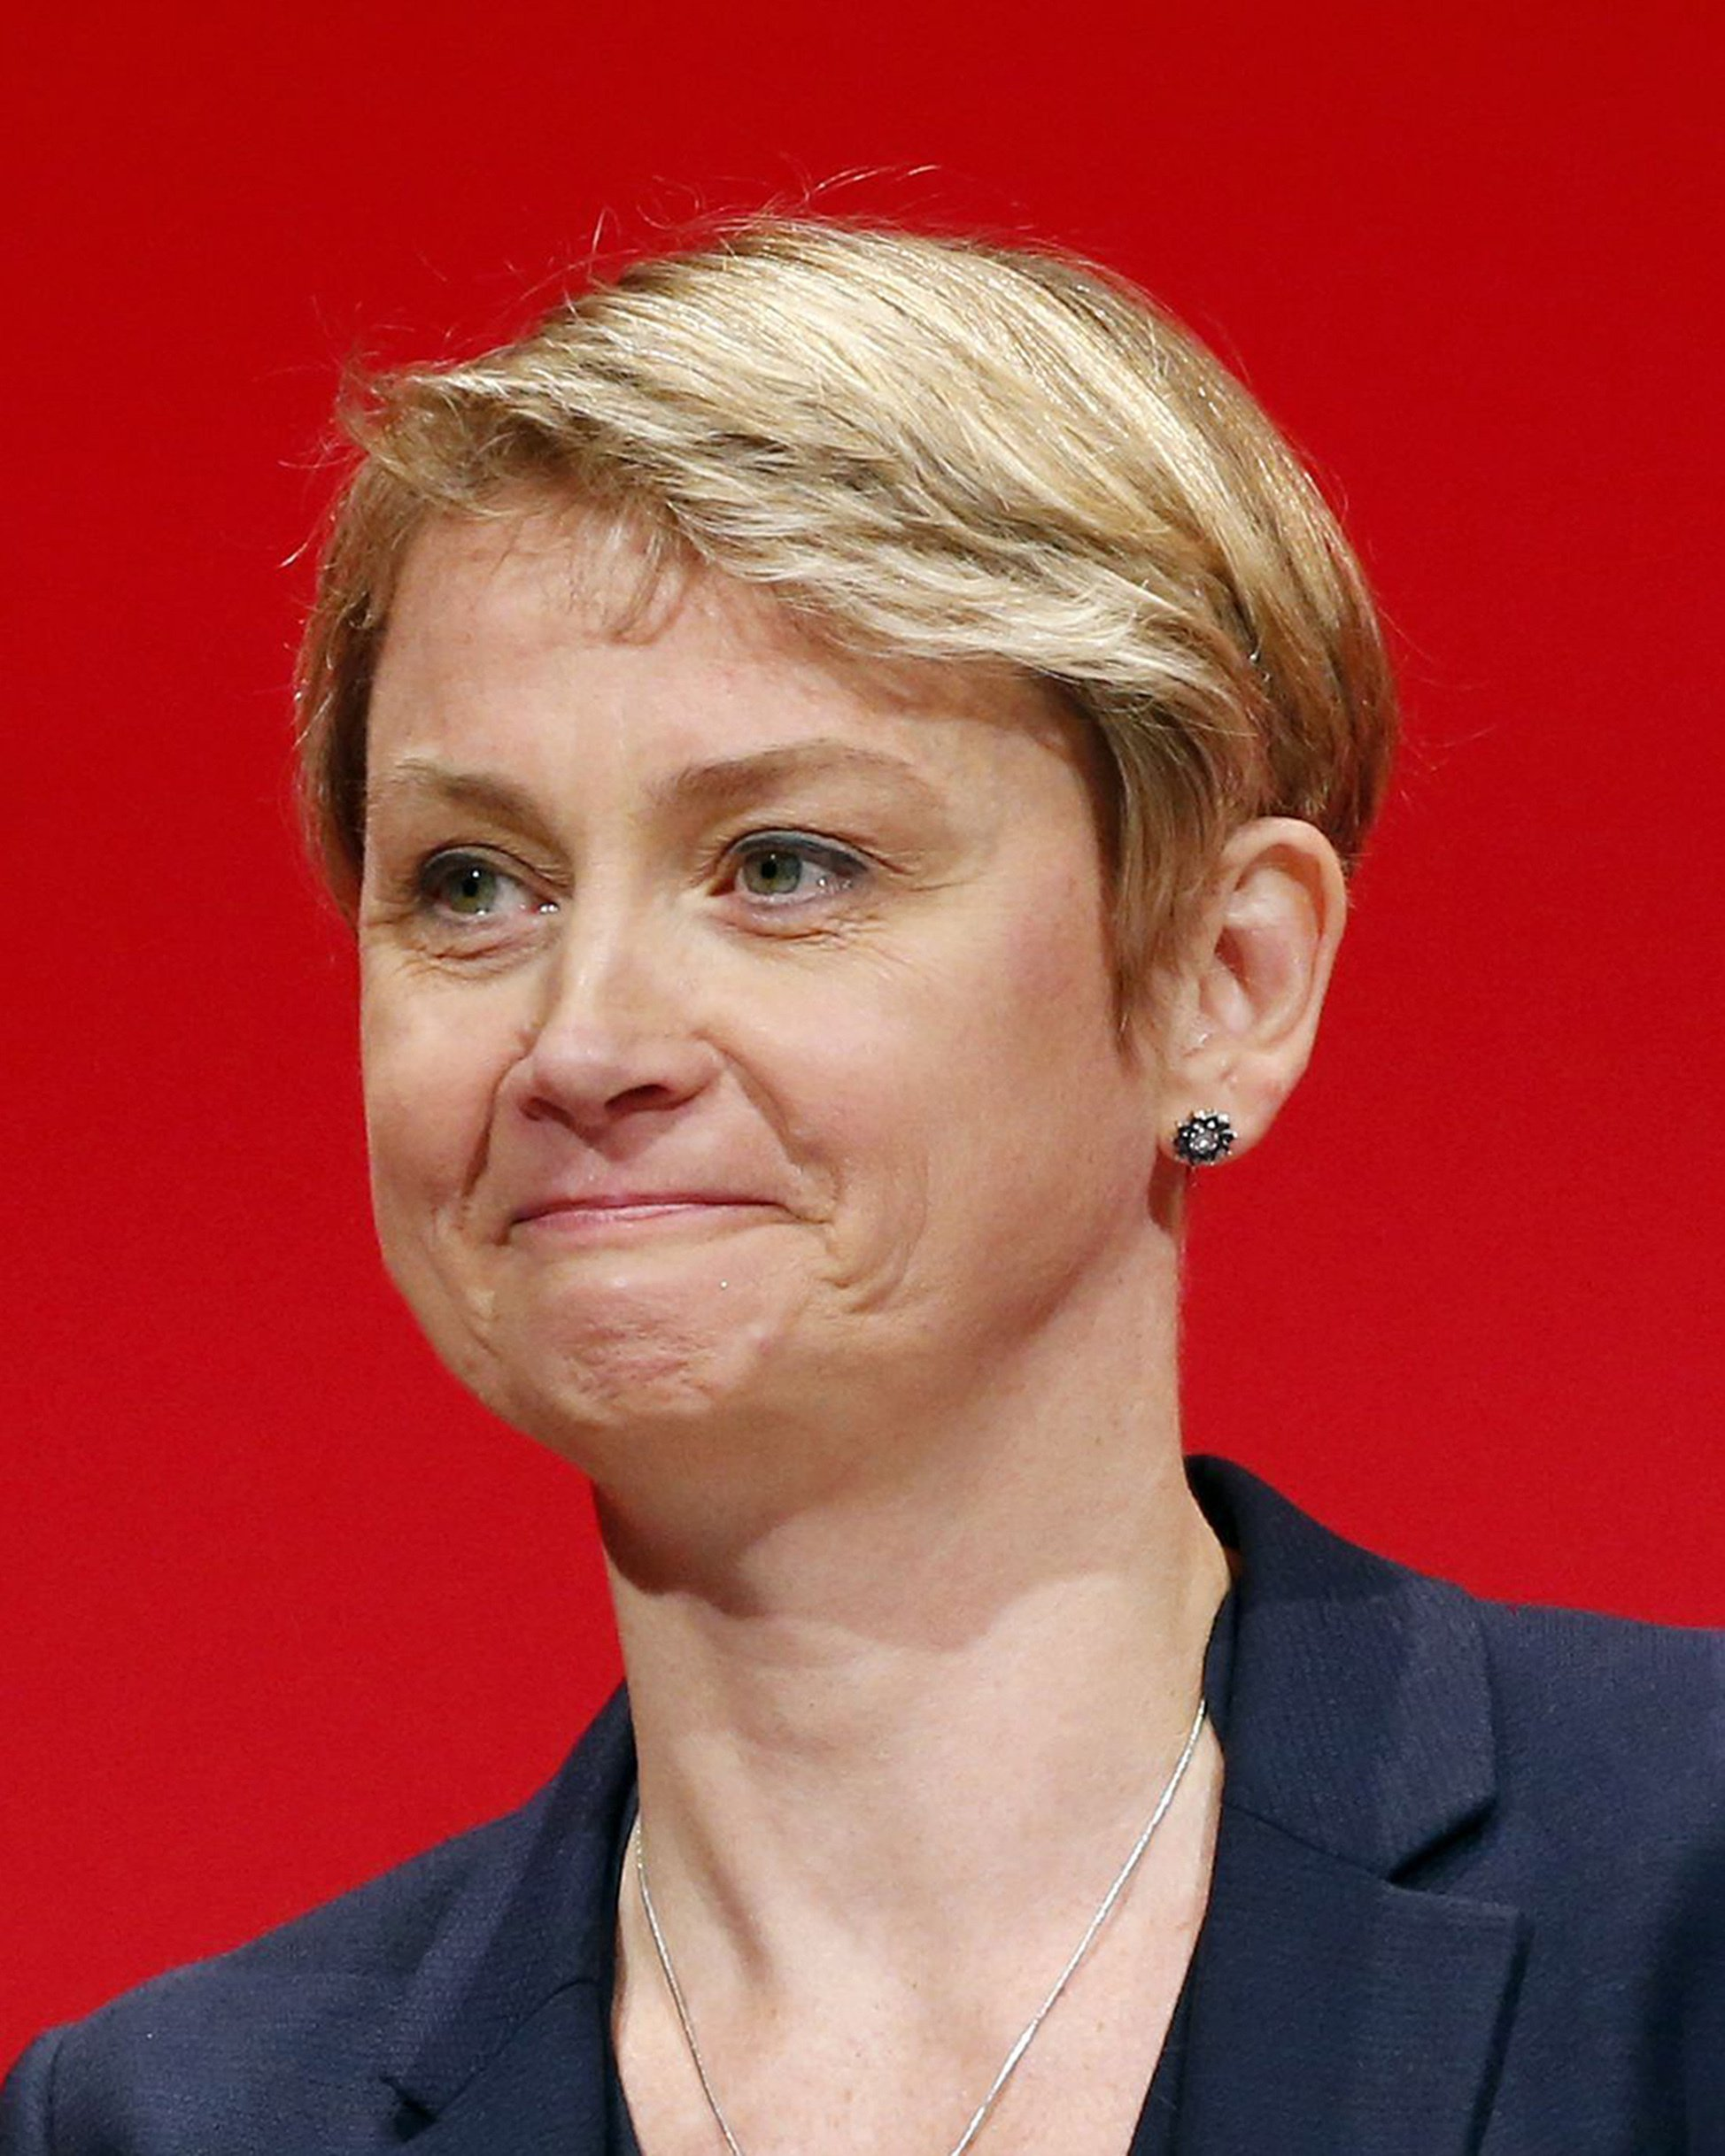 File photo dated 28/09/16 of Yvette Cooper. A 59-year-old man has been arrested over threats against the MP. PRESS ASSOCIATION Photo. Issue date: Tuesday February 5, 2019. West Yorkshire Police said officers held the suspect in Castleford on Friday over alleged threats against a serving MP, but would not give further details. See PA story POLICE Cooper. Photo credit should read: Danny Lawson/PA Wire